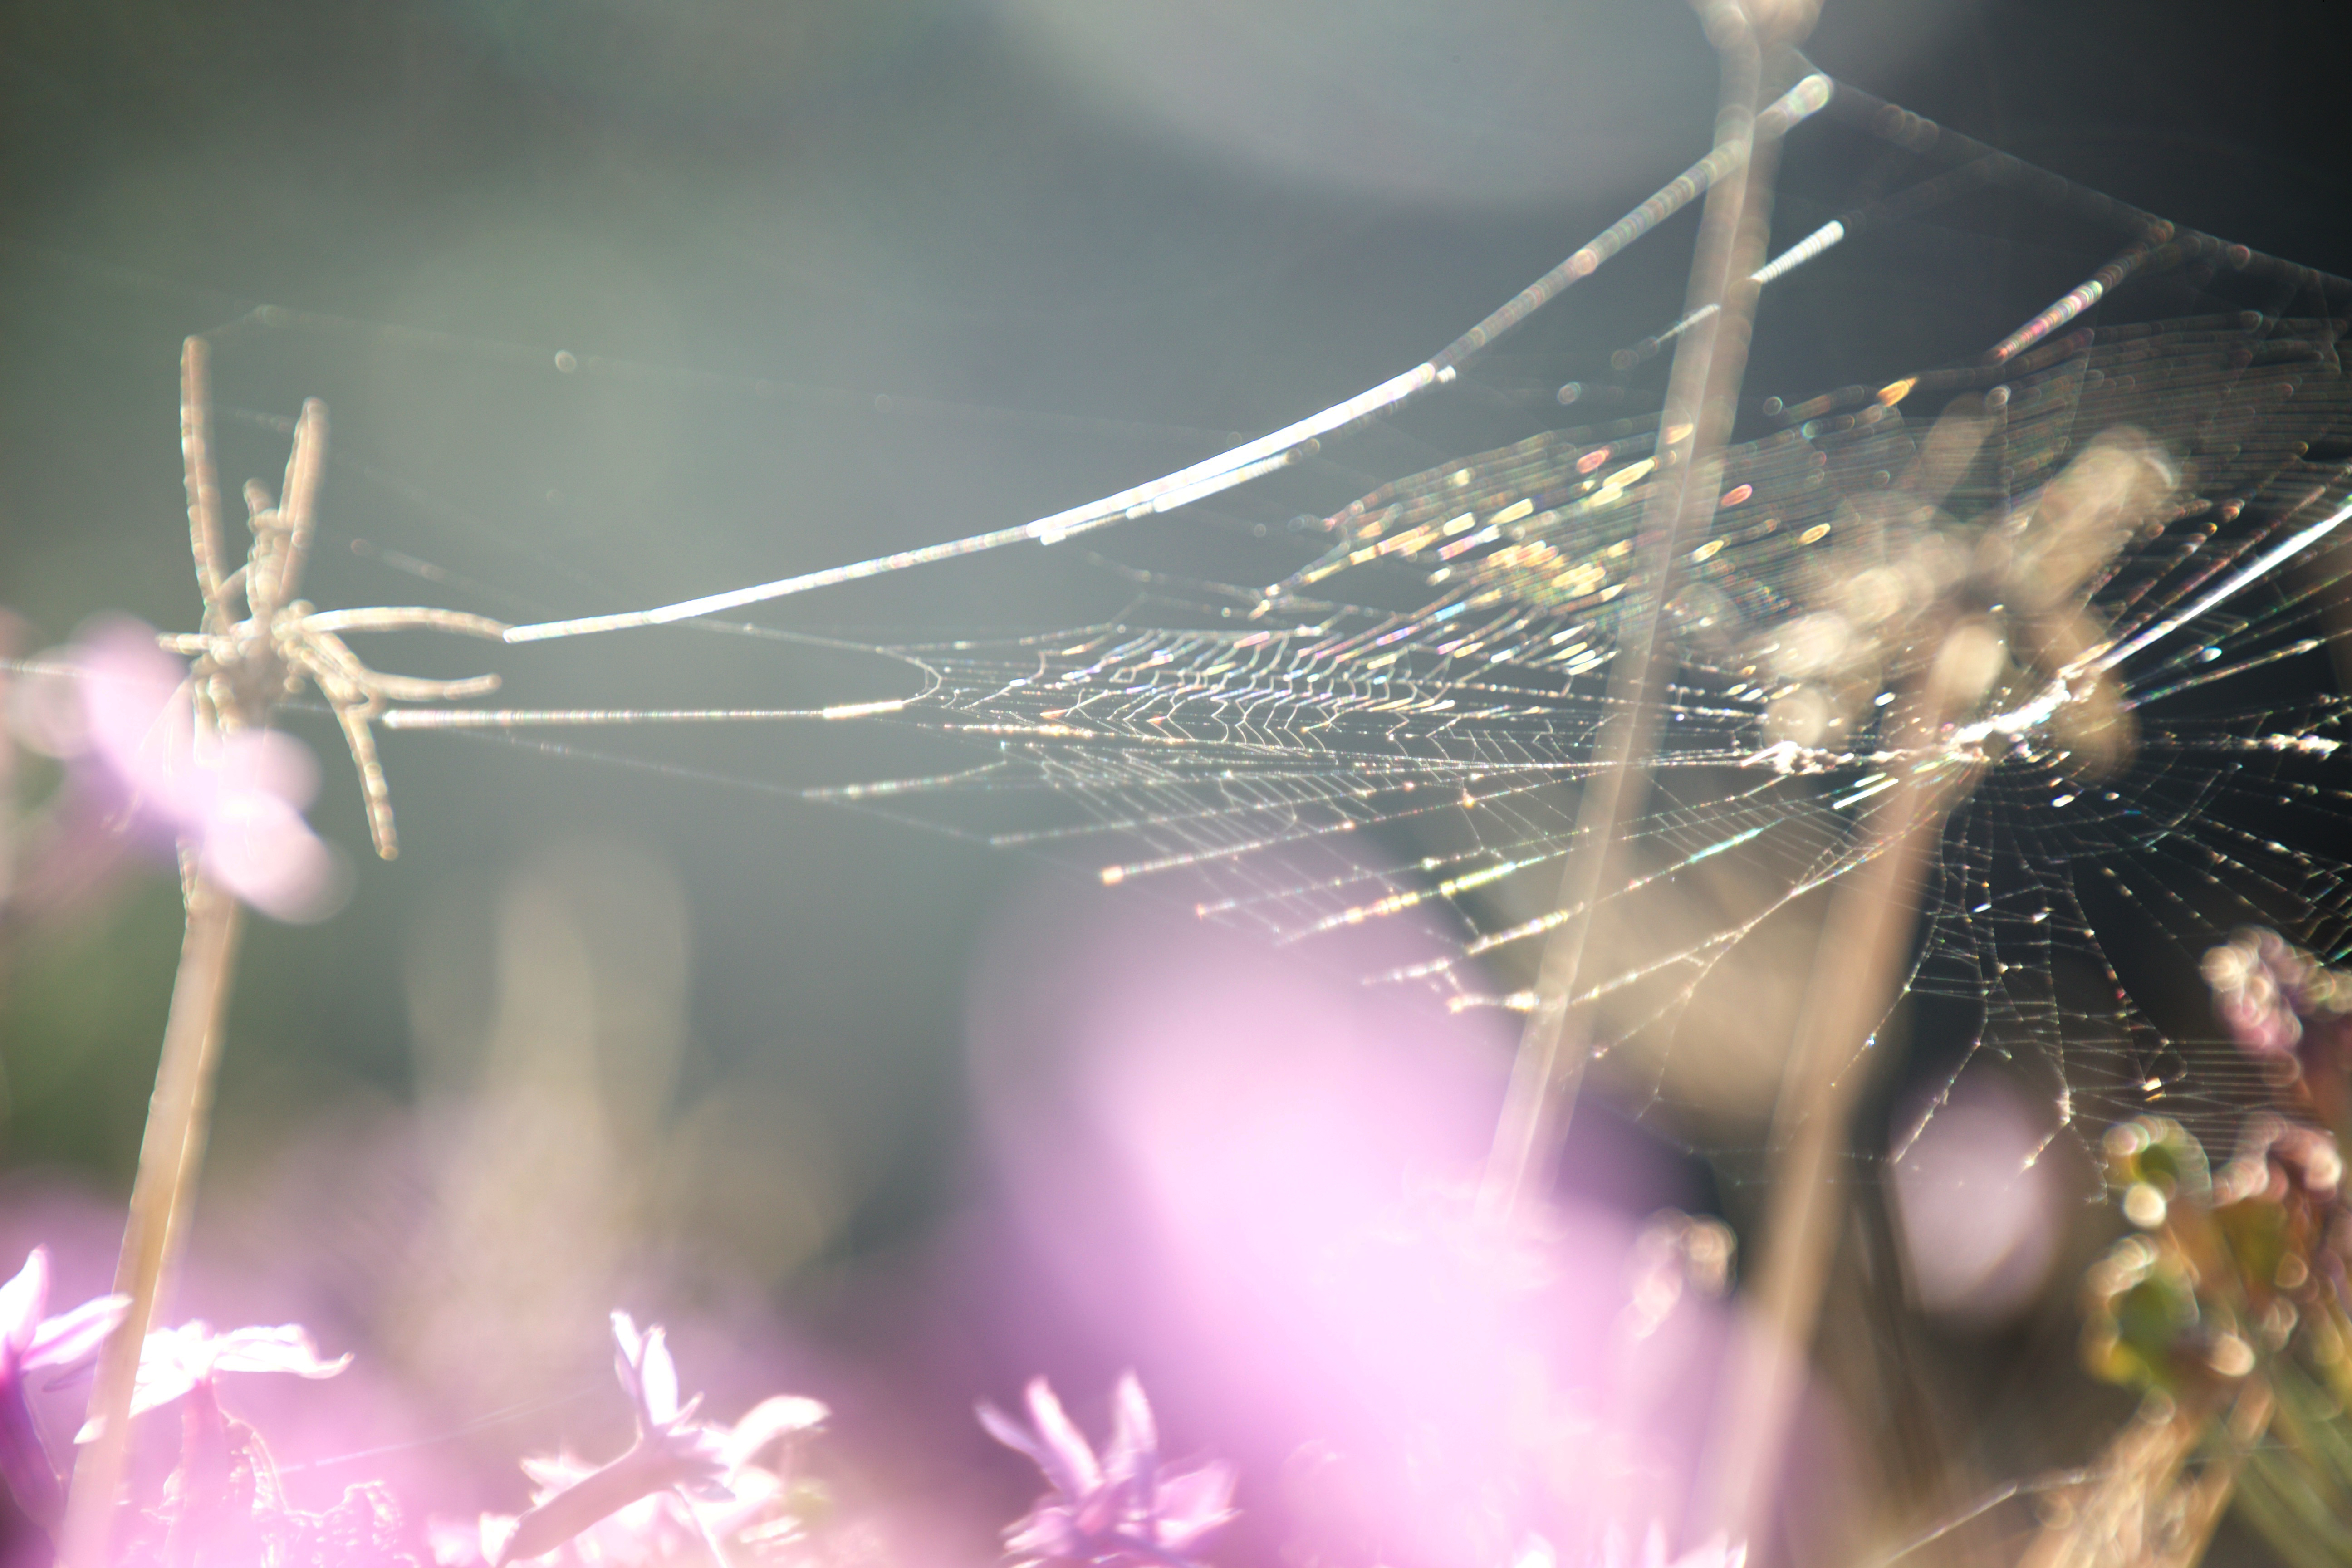 Rainbow spider web on lilac flowers